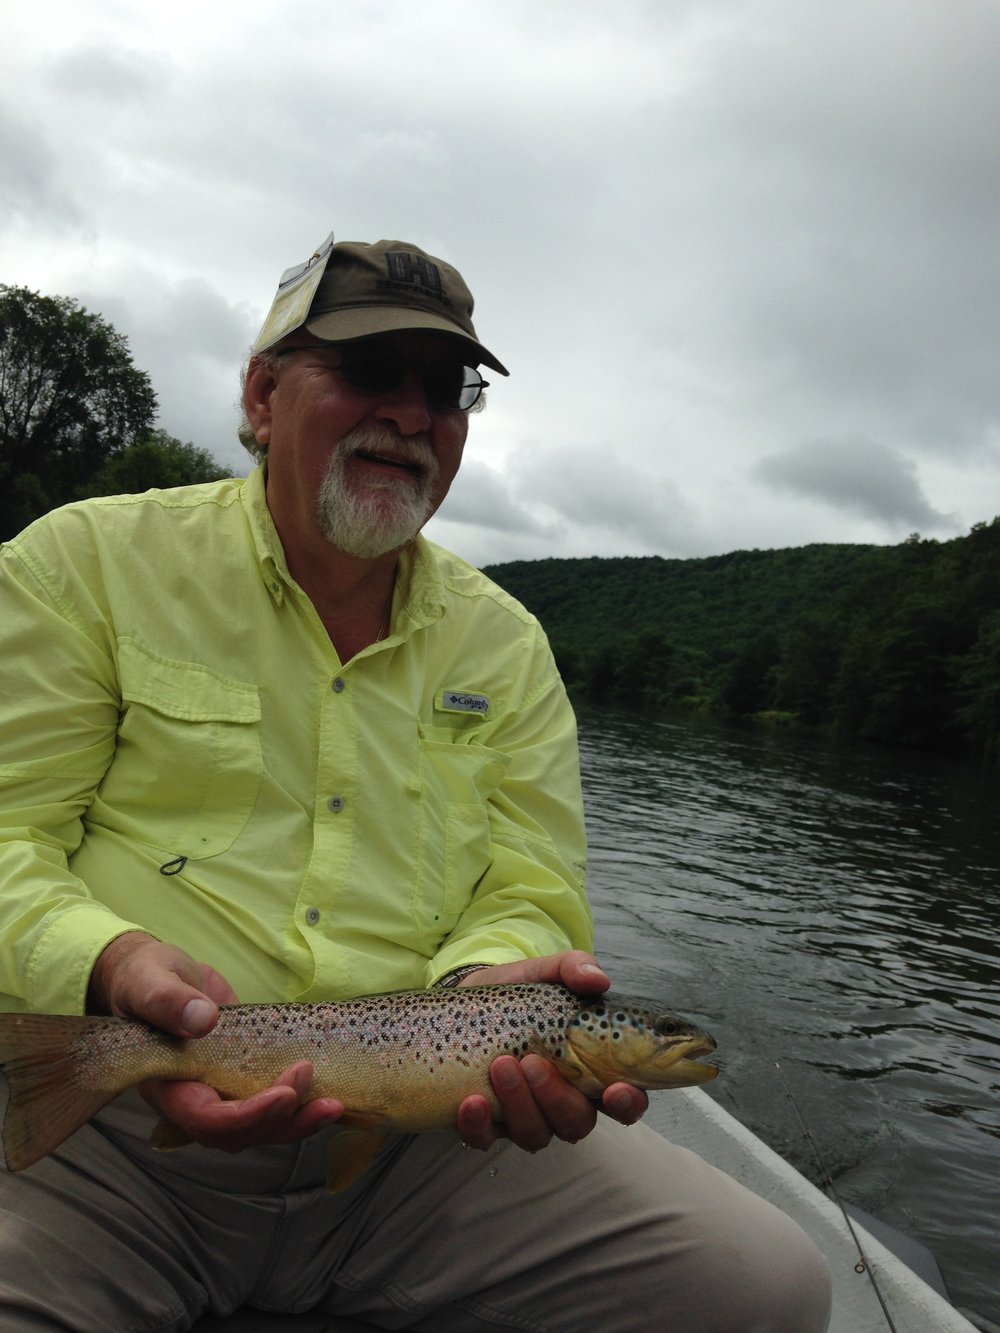 Steve P. caught a lot of trout on this day!  Nice fish!